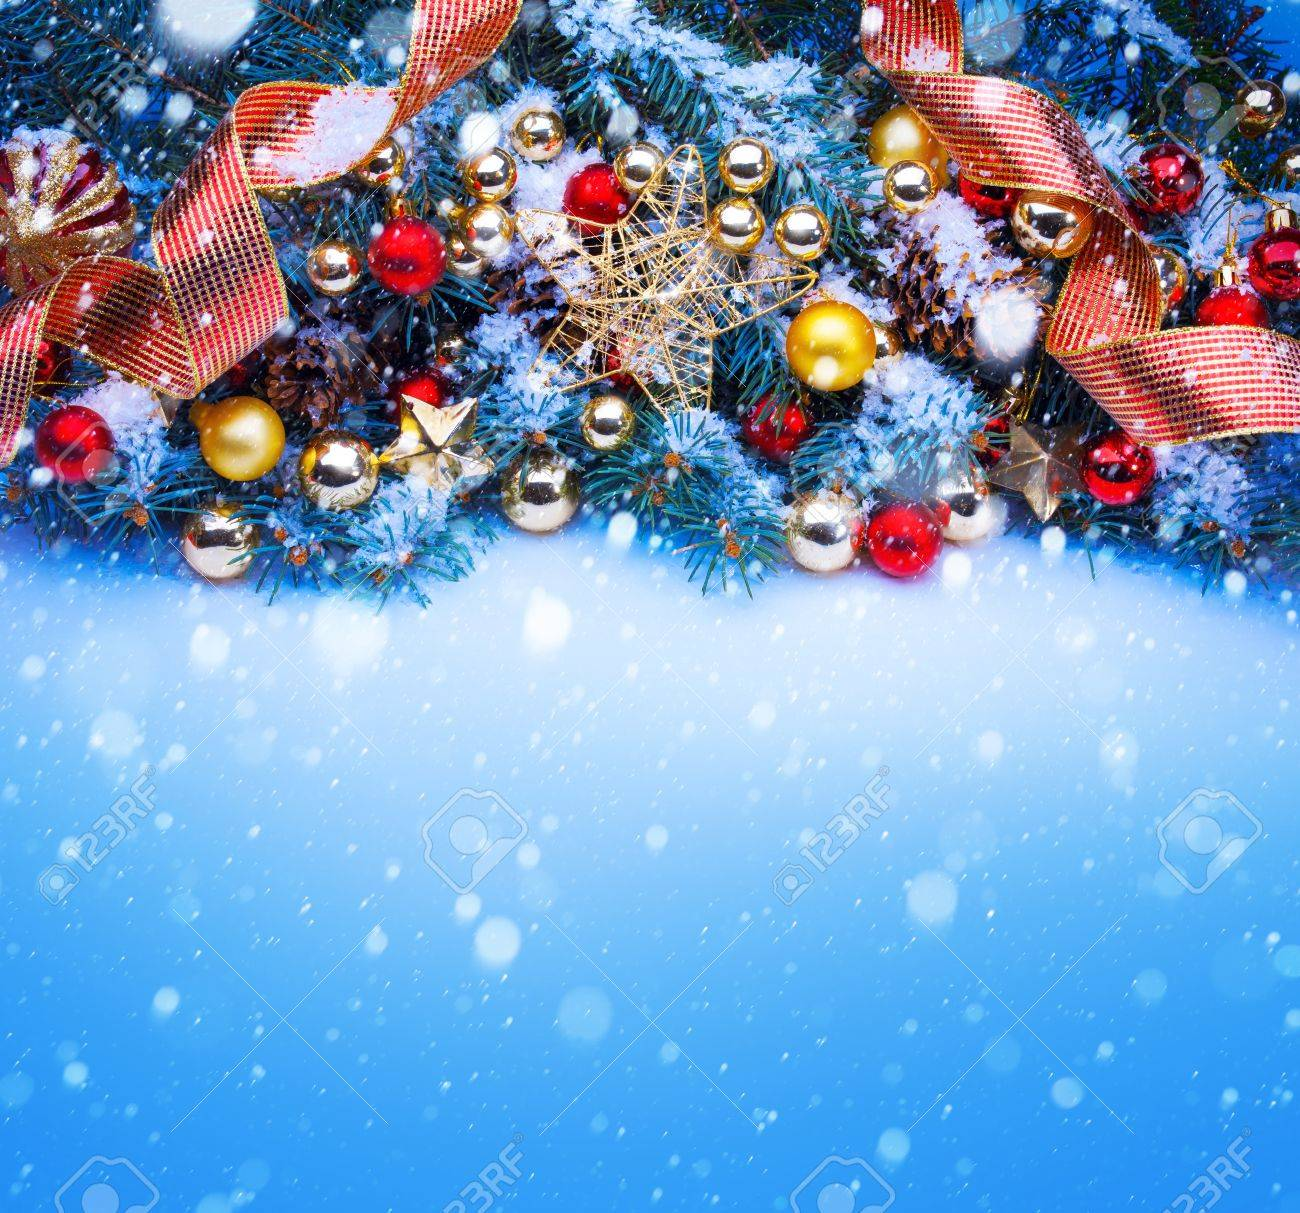 Christmas Greetings Background.Design A Blue Christmas Greeting Card Background